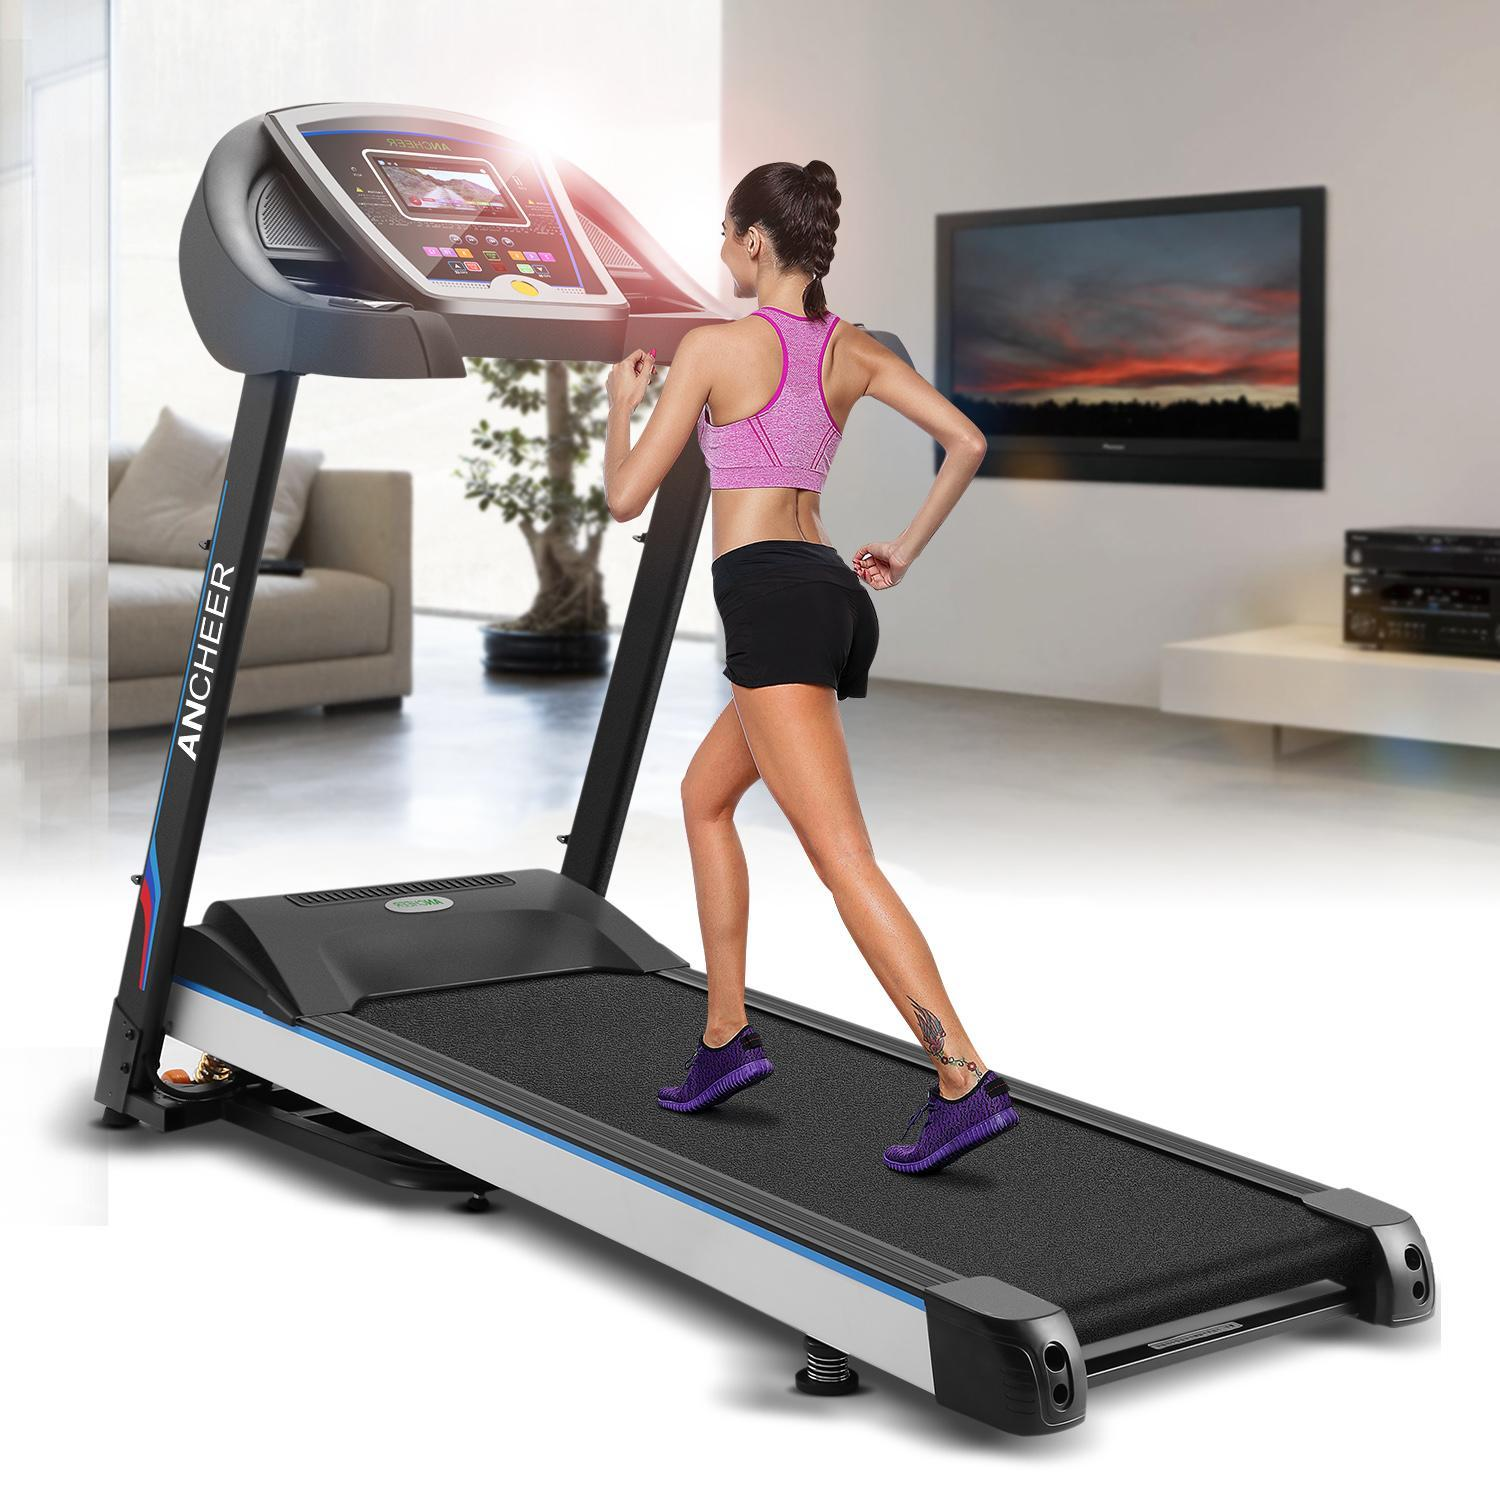 Ancheer 3.0hp Folding Electric Treadmill Health Fitness Training Equipment HDPML by